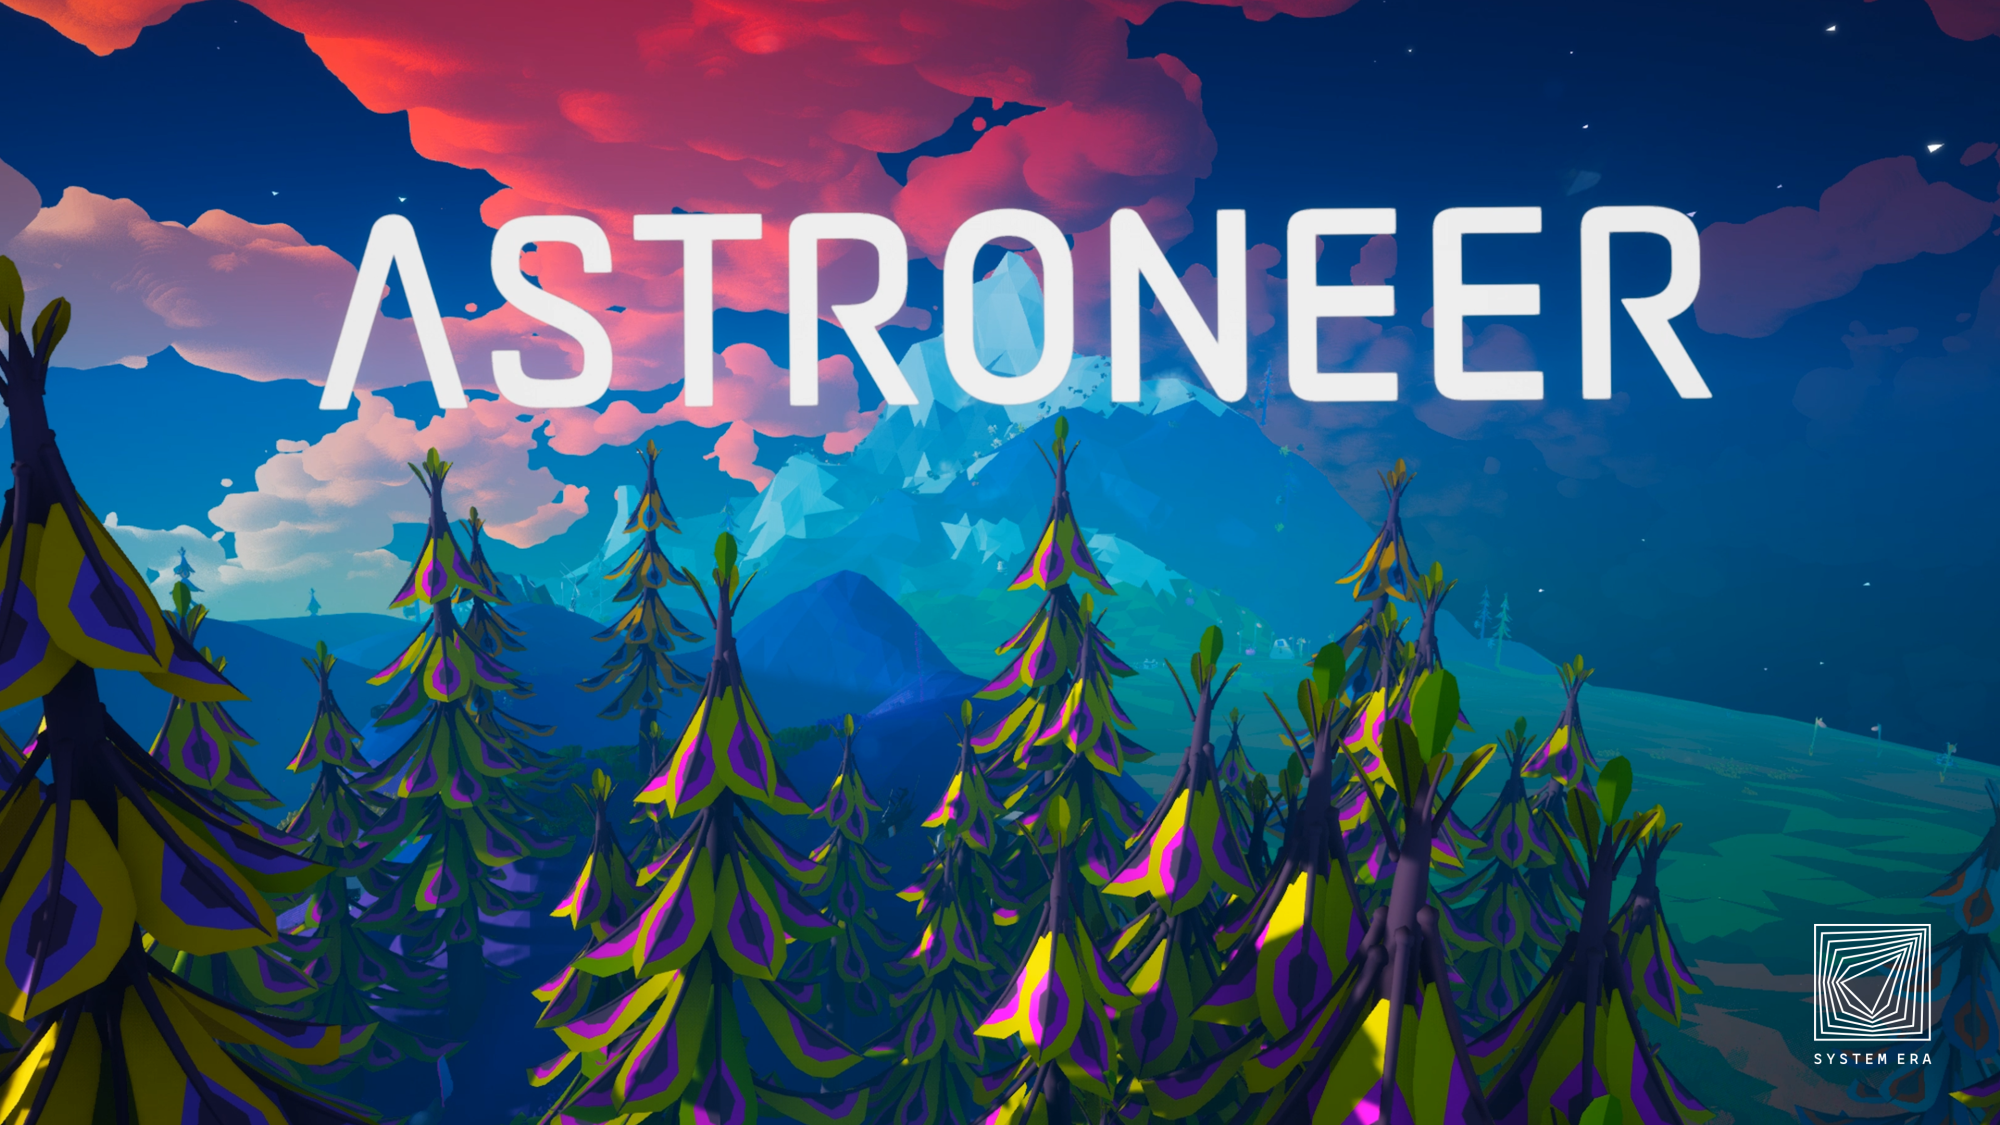 'Astroneer' brings space exploration to Xbox and PC on February 6th | DeviceDaily.com